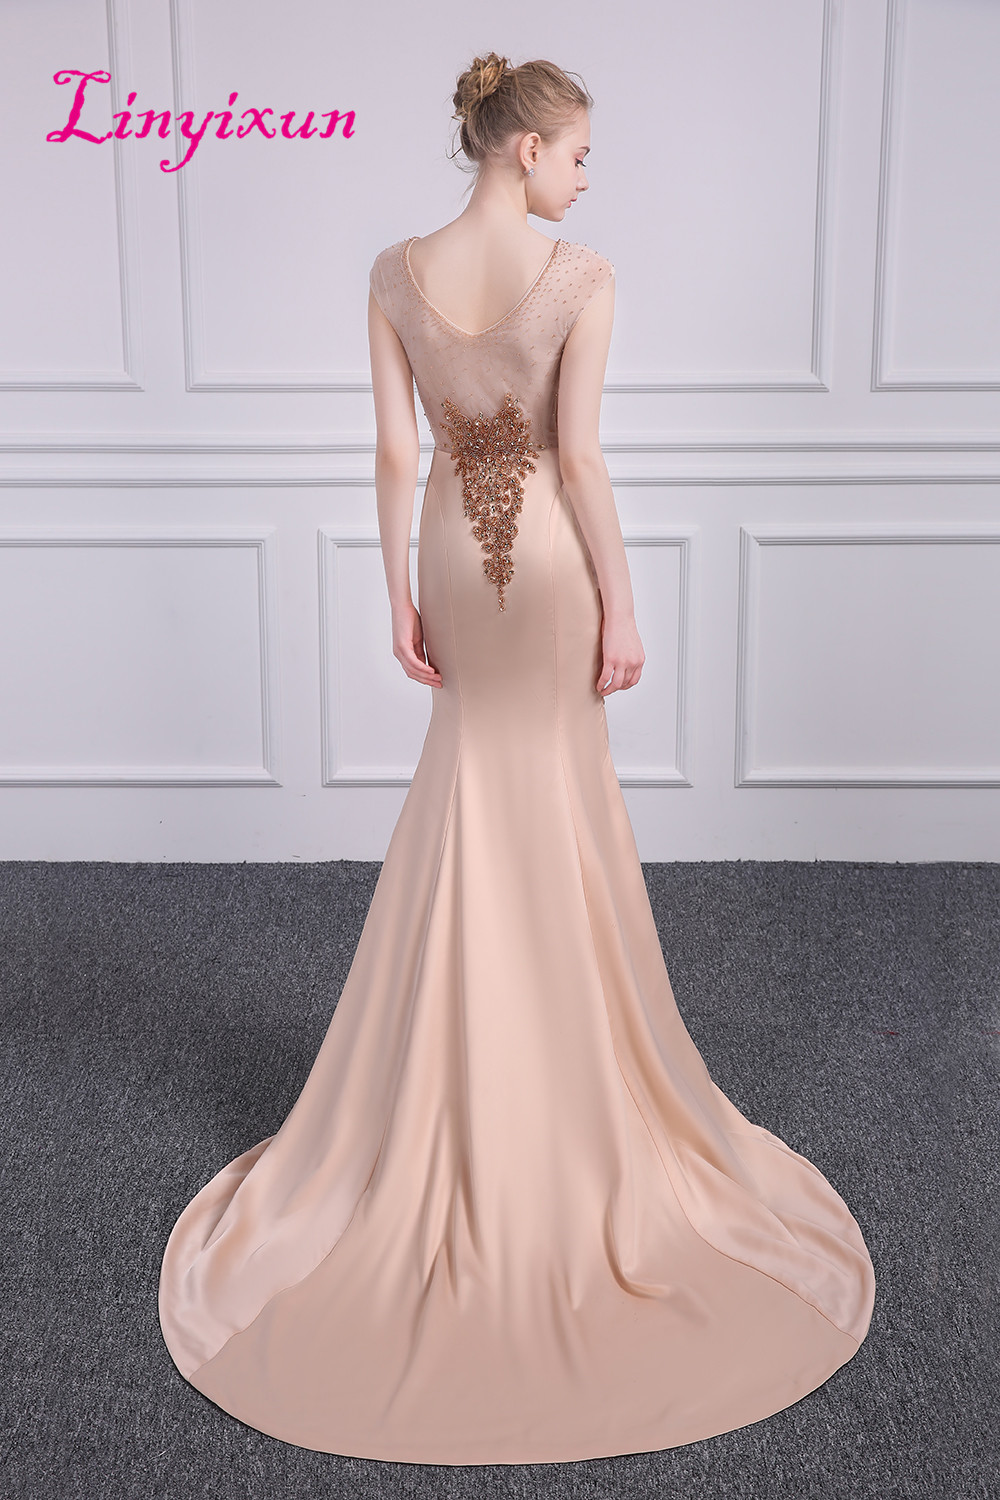 Linyixun Bling Bling Sexy Mermaid Prom Dresses 2018 With Glod Beaded ...